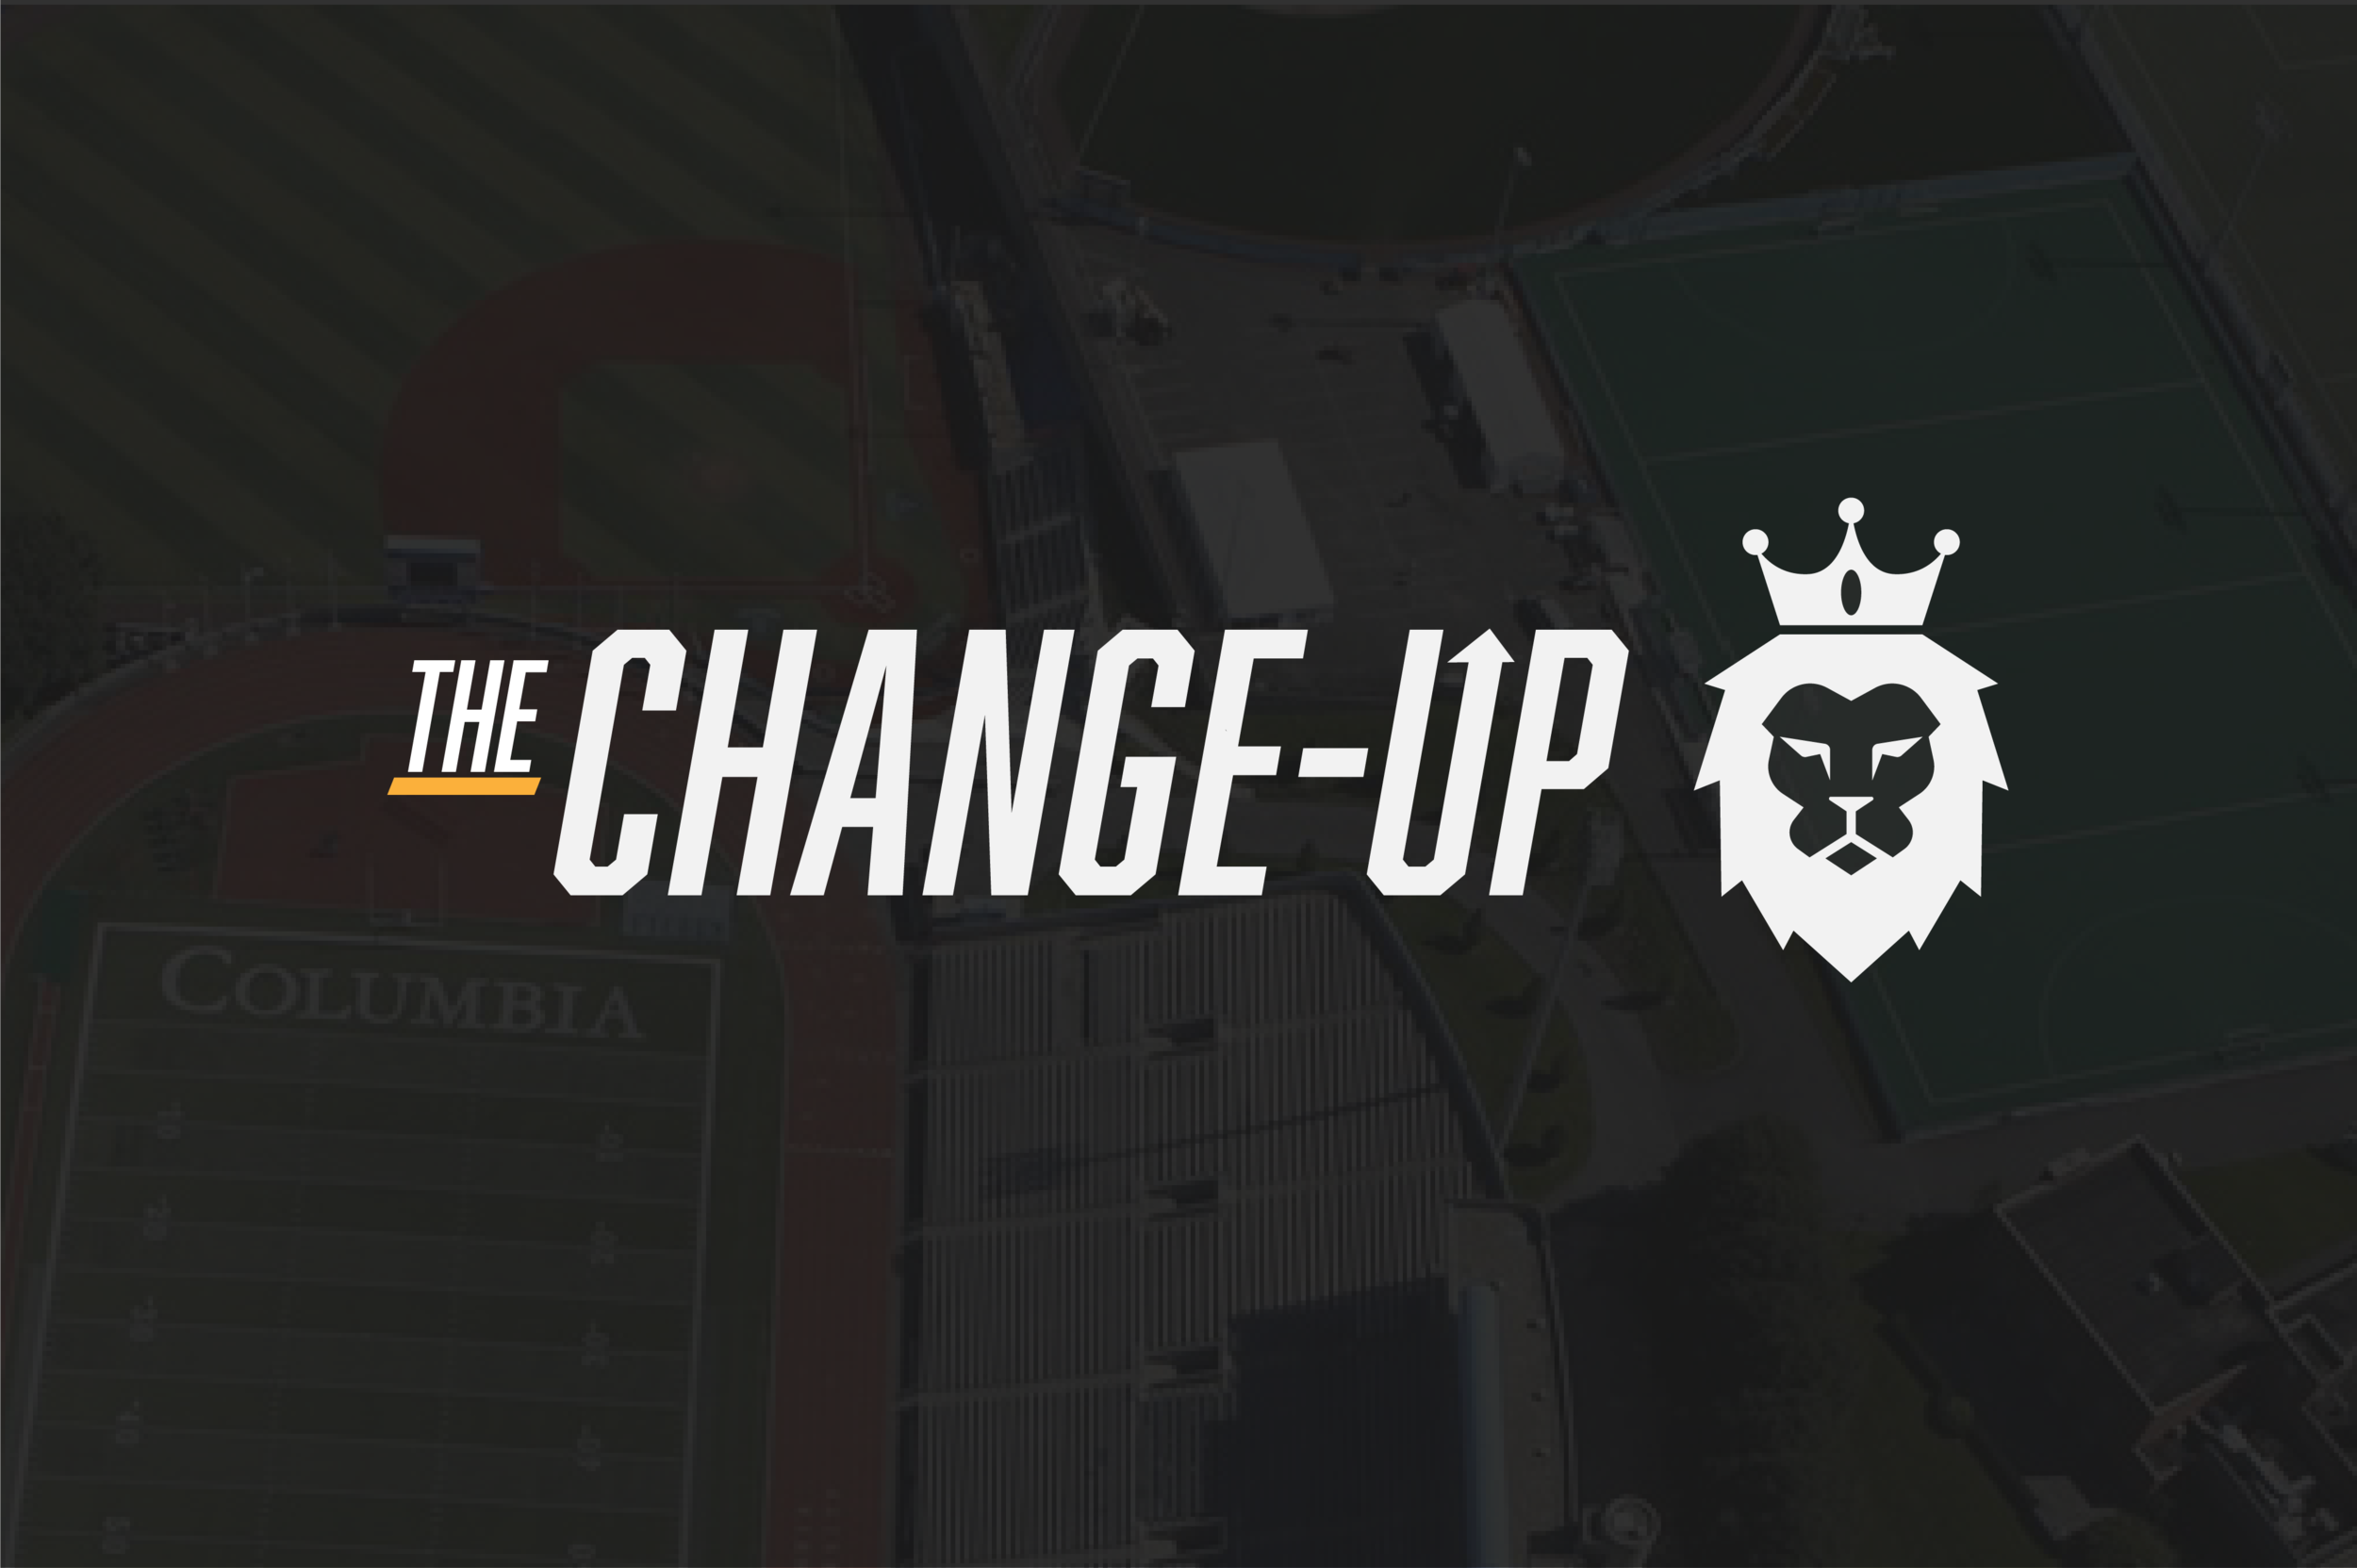 The Change-Up is a new student-run publication dedicated to producing high-quality feature content on Columbia athletics and culture. (Chase Manze)